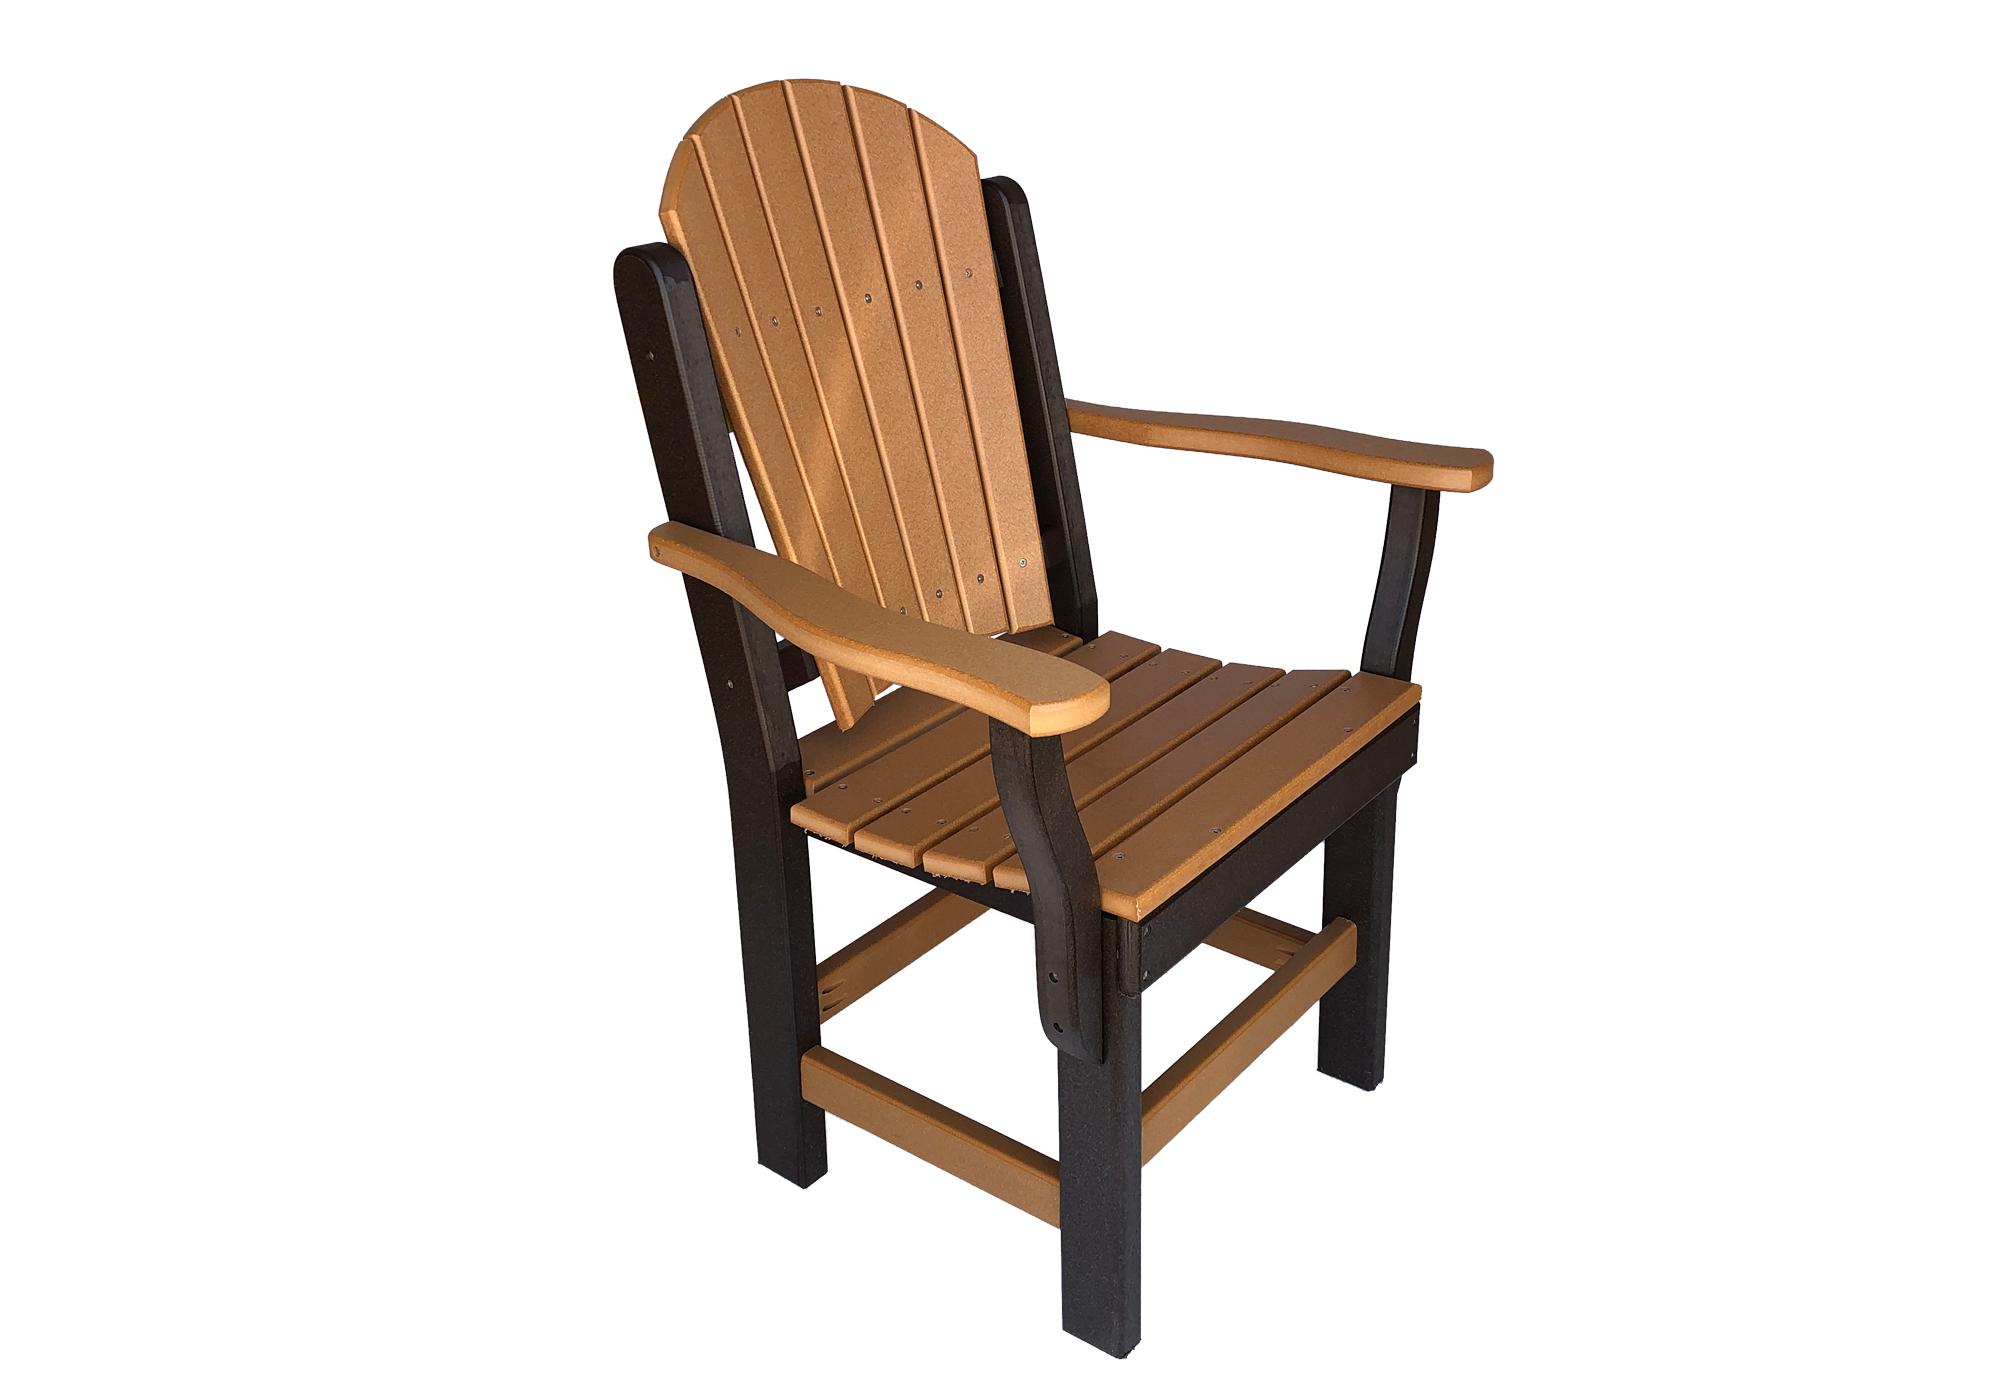 48 patio chair for outdoor furniture sets from poly wood